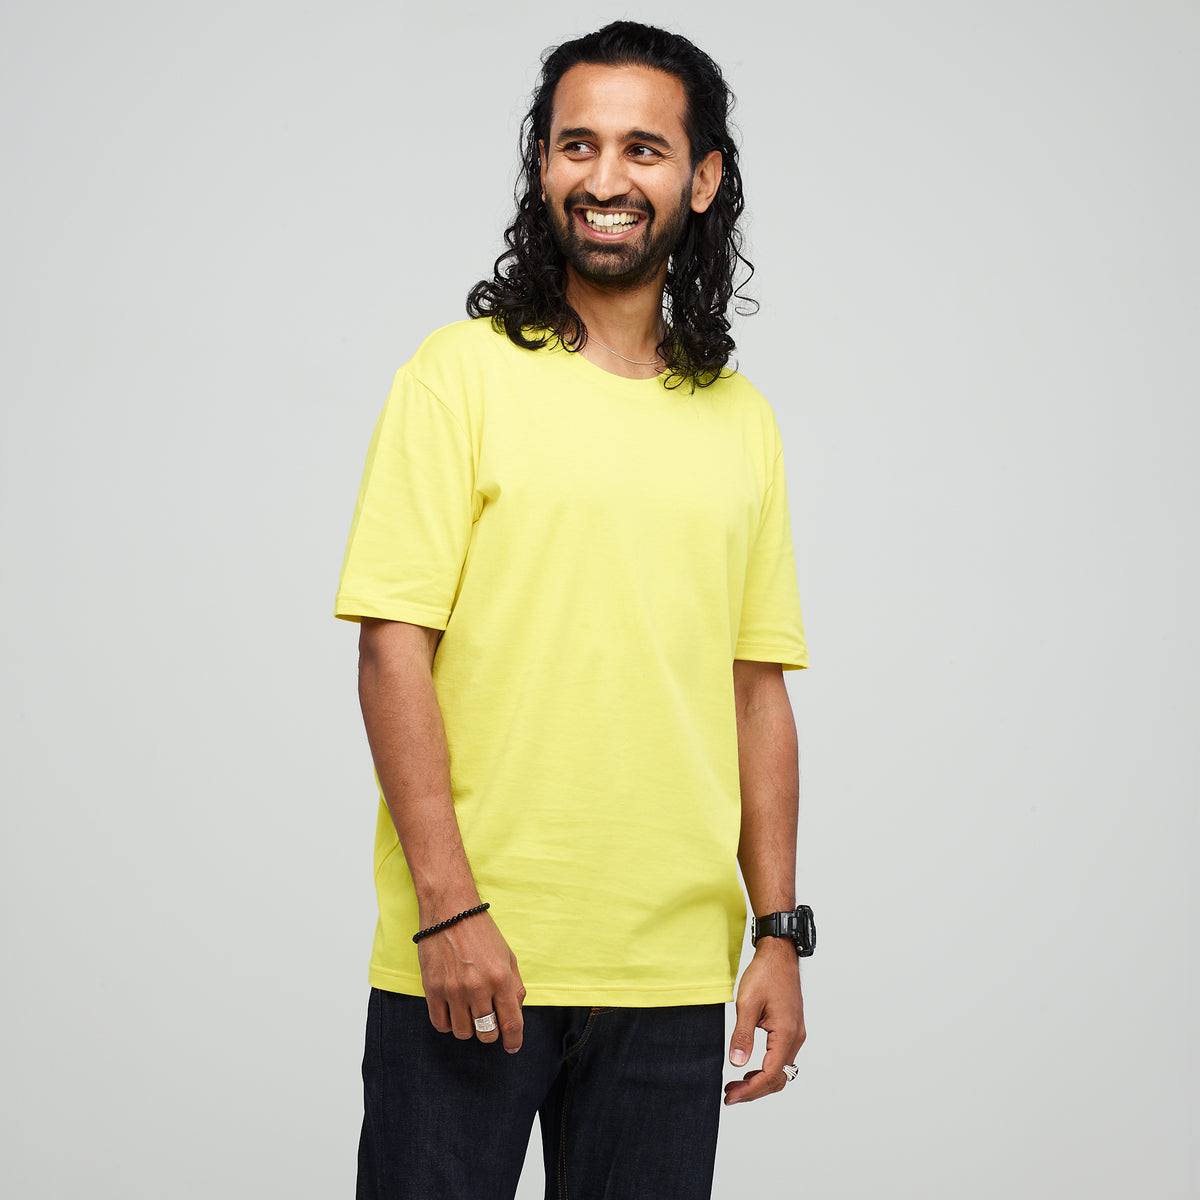 Men's Short Sleeve T-Shirt Canary Yellow - Community Clothing